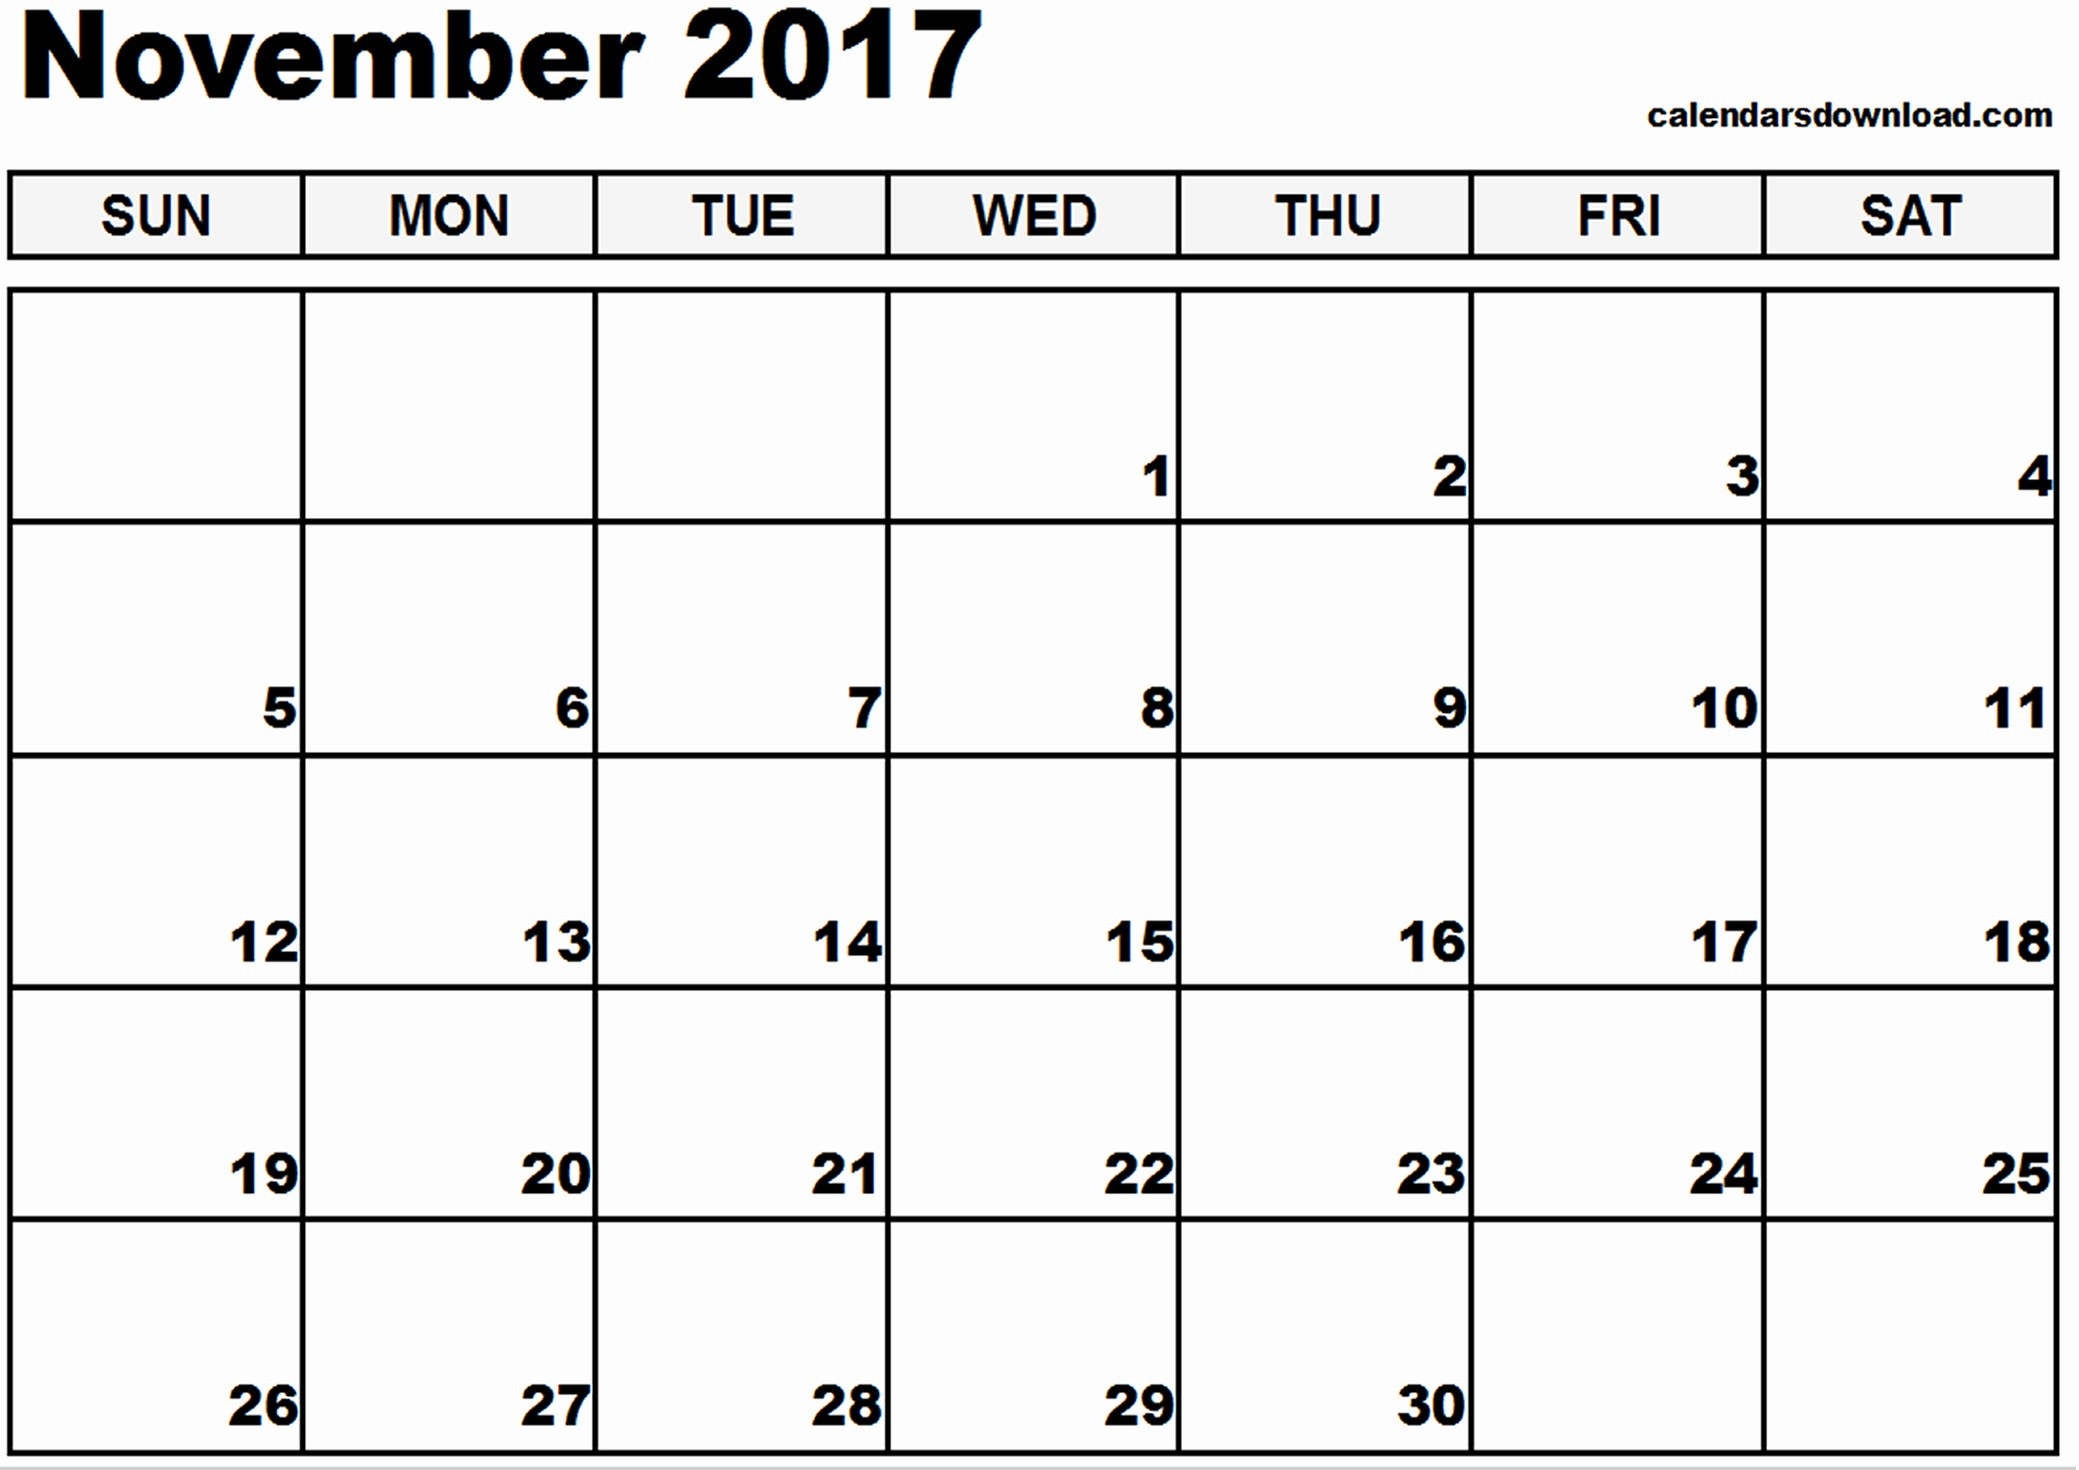 2017 Yearly Calendar Excel Template Inspirational November 2017 Calendar Excel